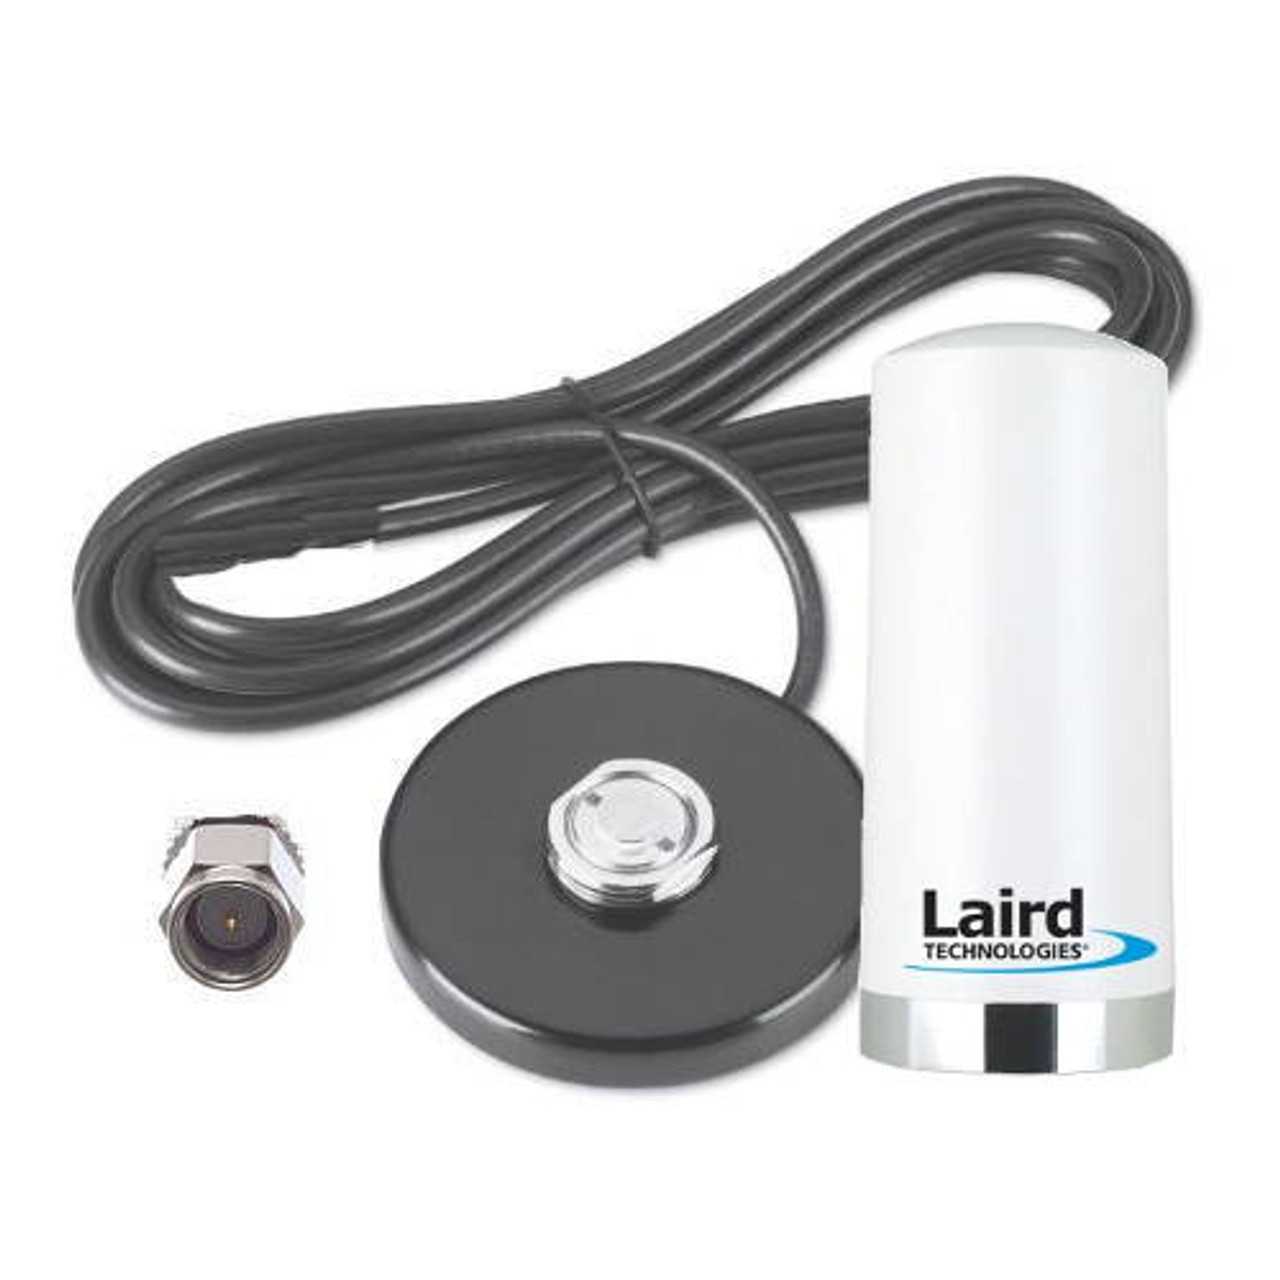 Laird Phantom 3G/4G [White Antenna] w/NMO Magnetic Base SMA M